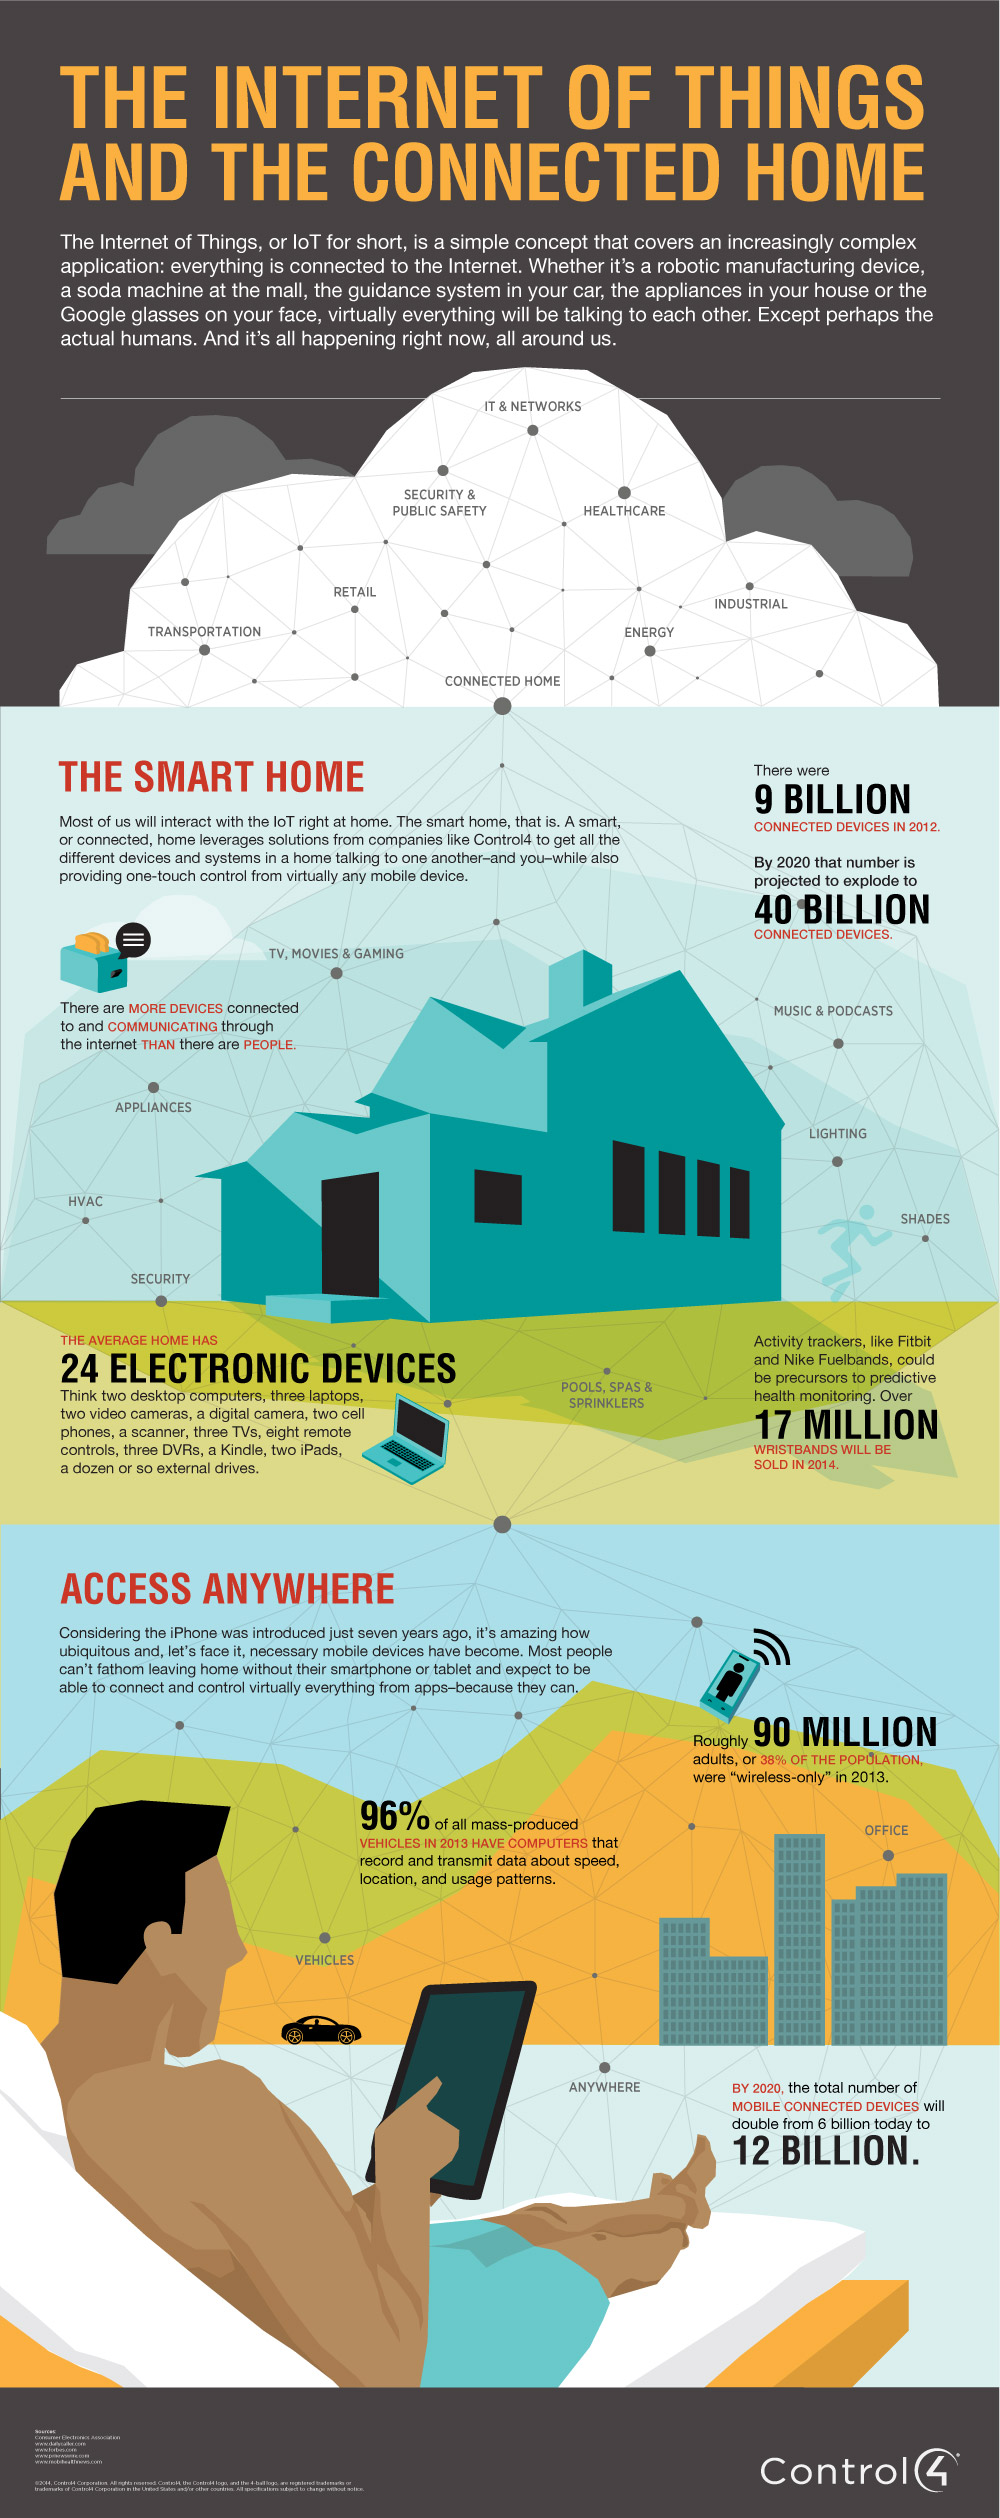 The Internet of Things: What does it all mean? [INFOGRAPHIC]: